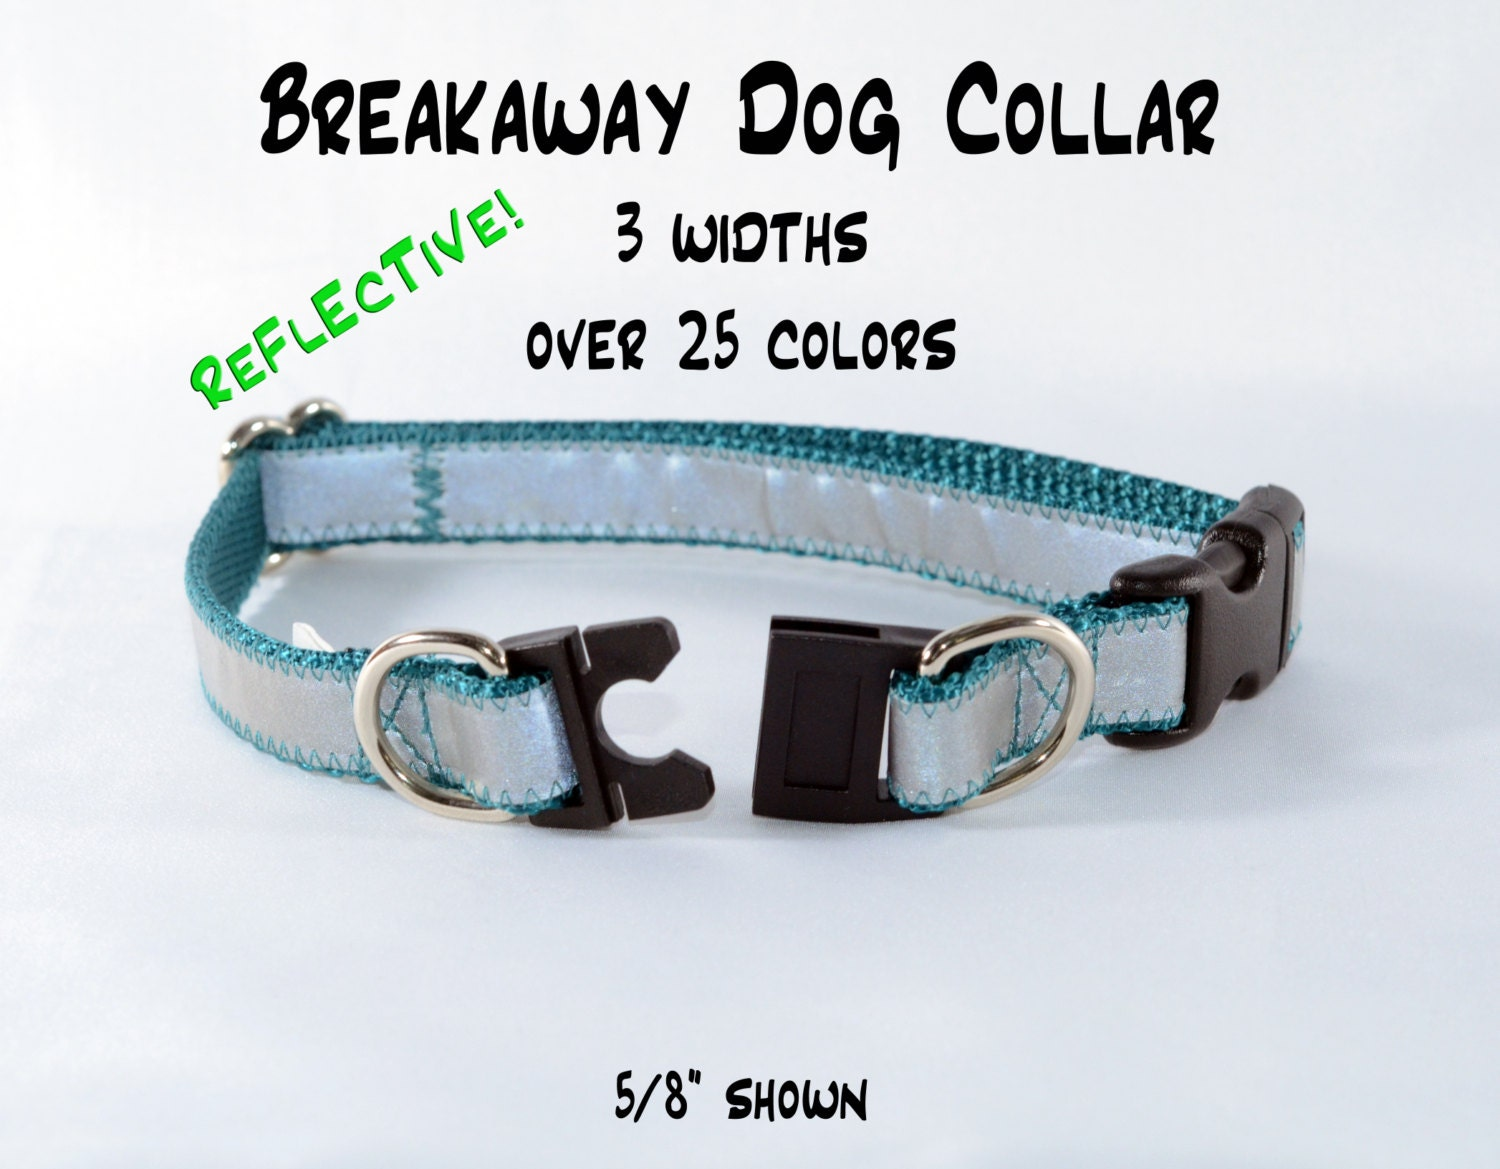 Dog Collar Caught In Crate